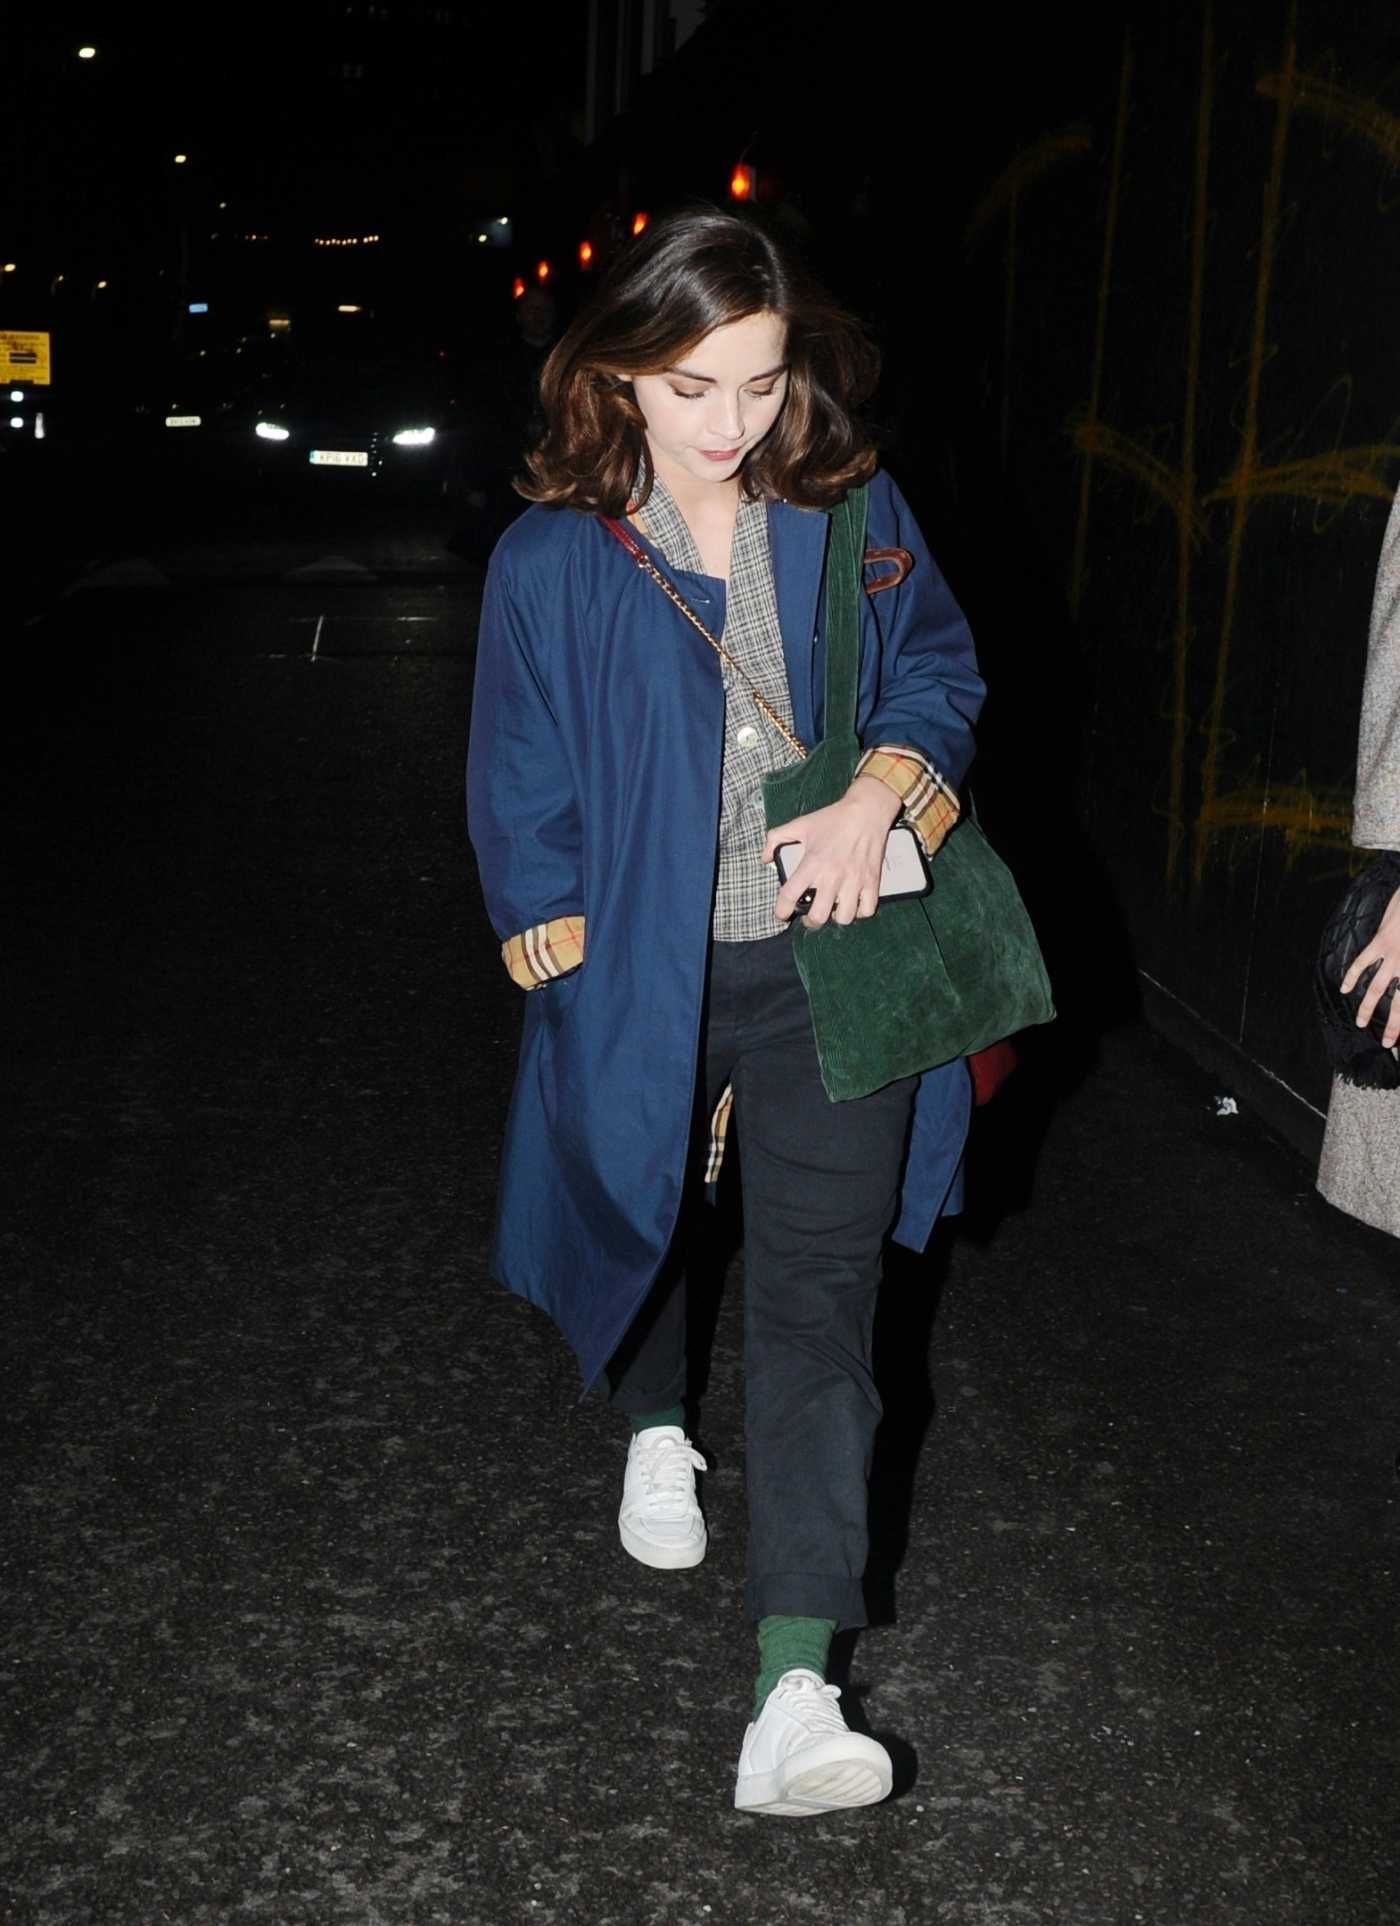 Jenna Coleman in a Blue Trench Coat Leaves the Old Vic Theatre in London 06/08/2019